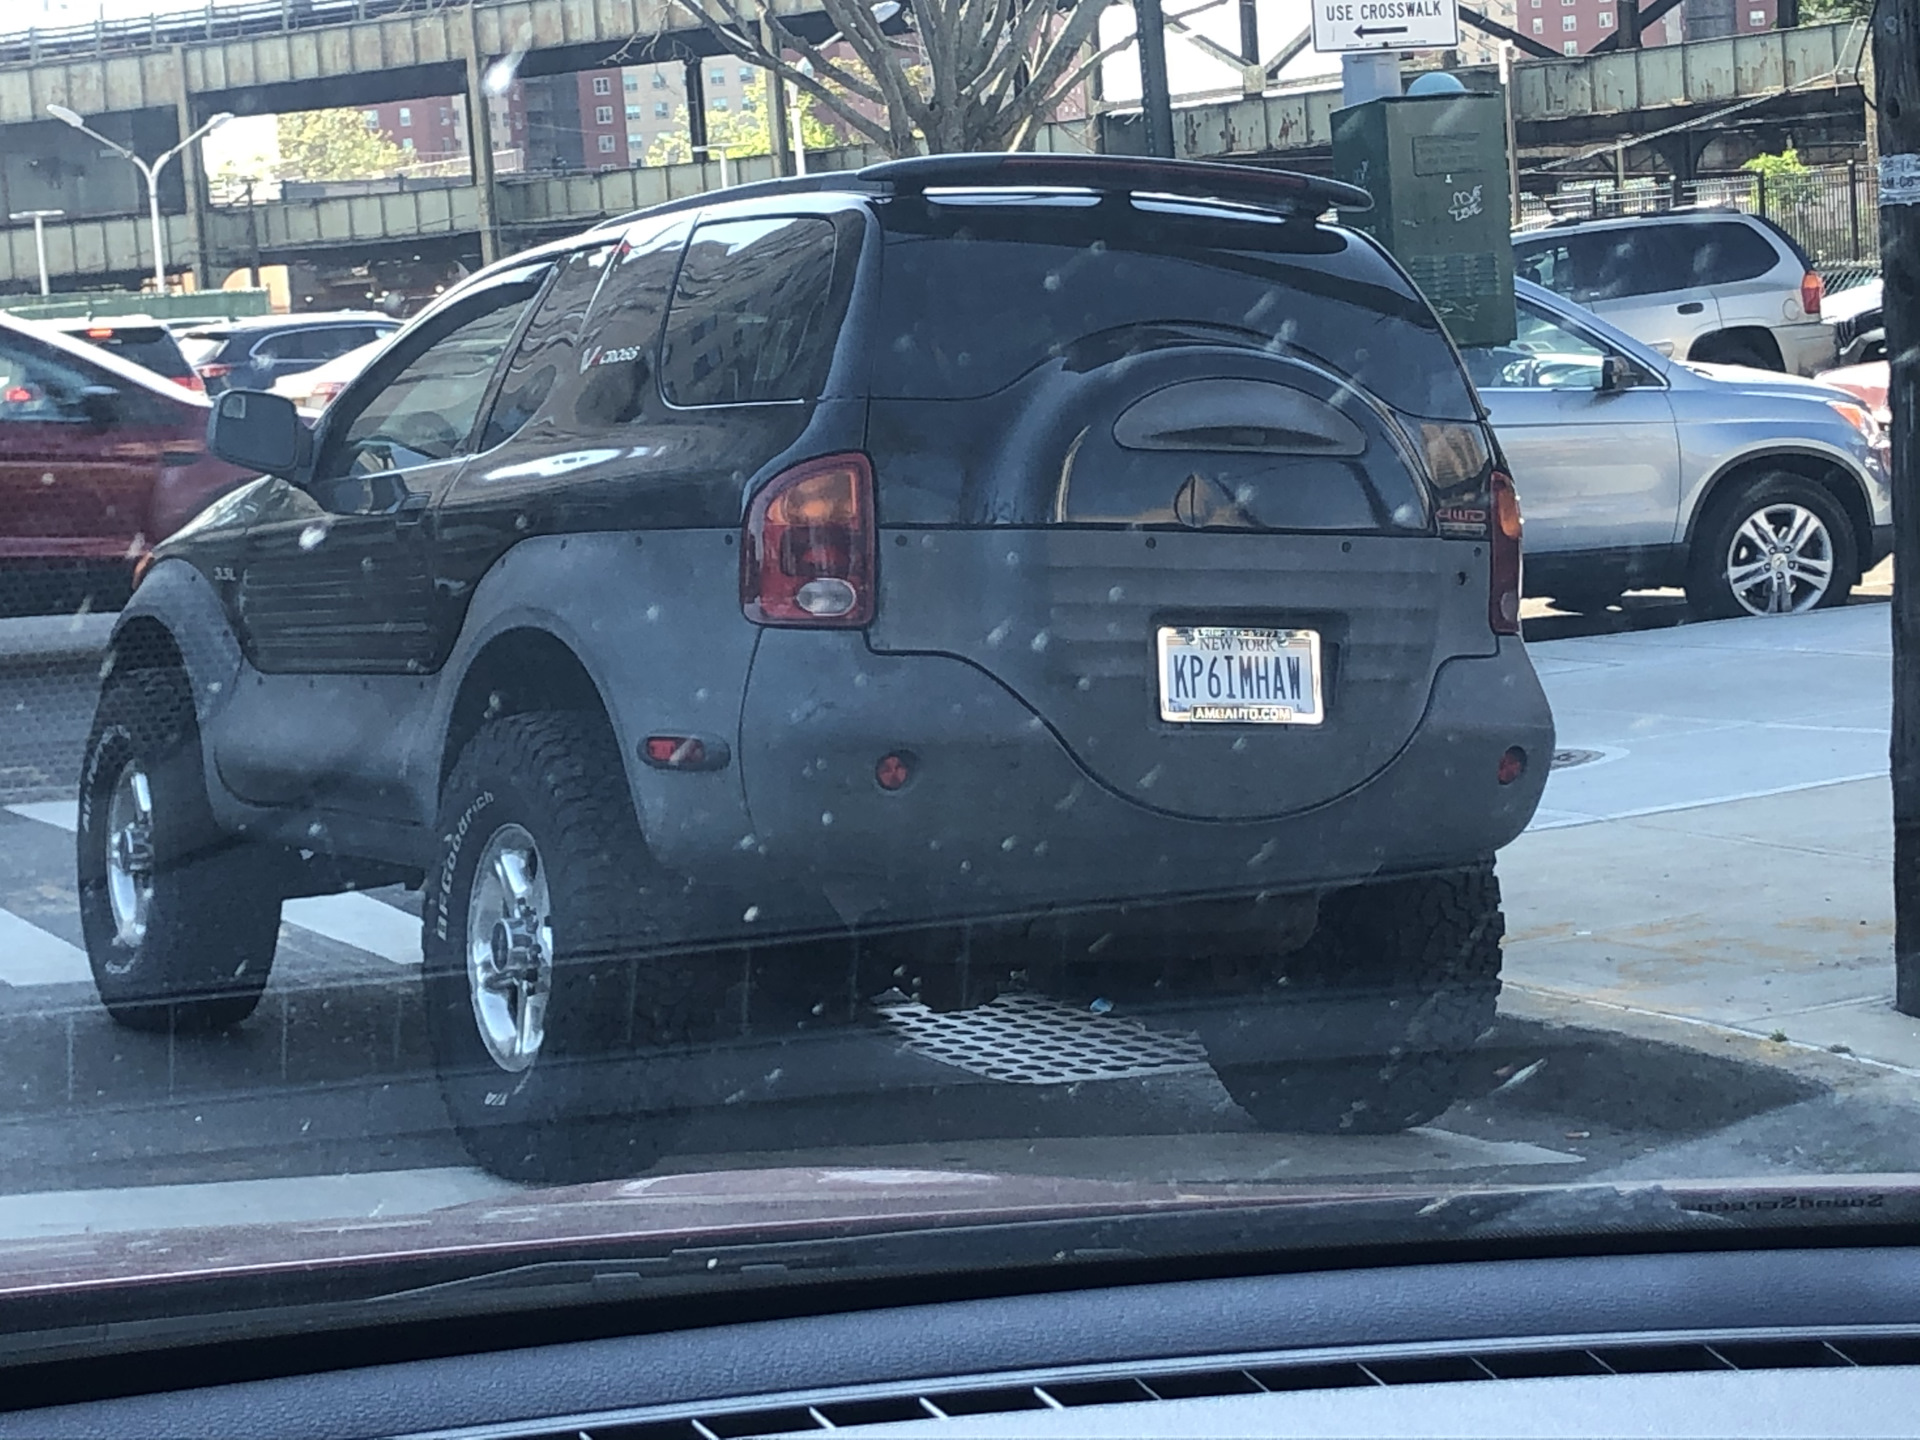 kp6imhaw - funny license plate of America